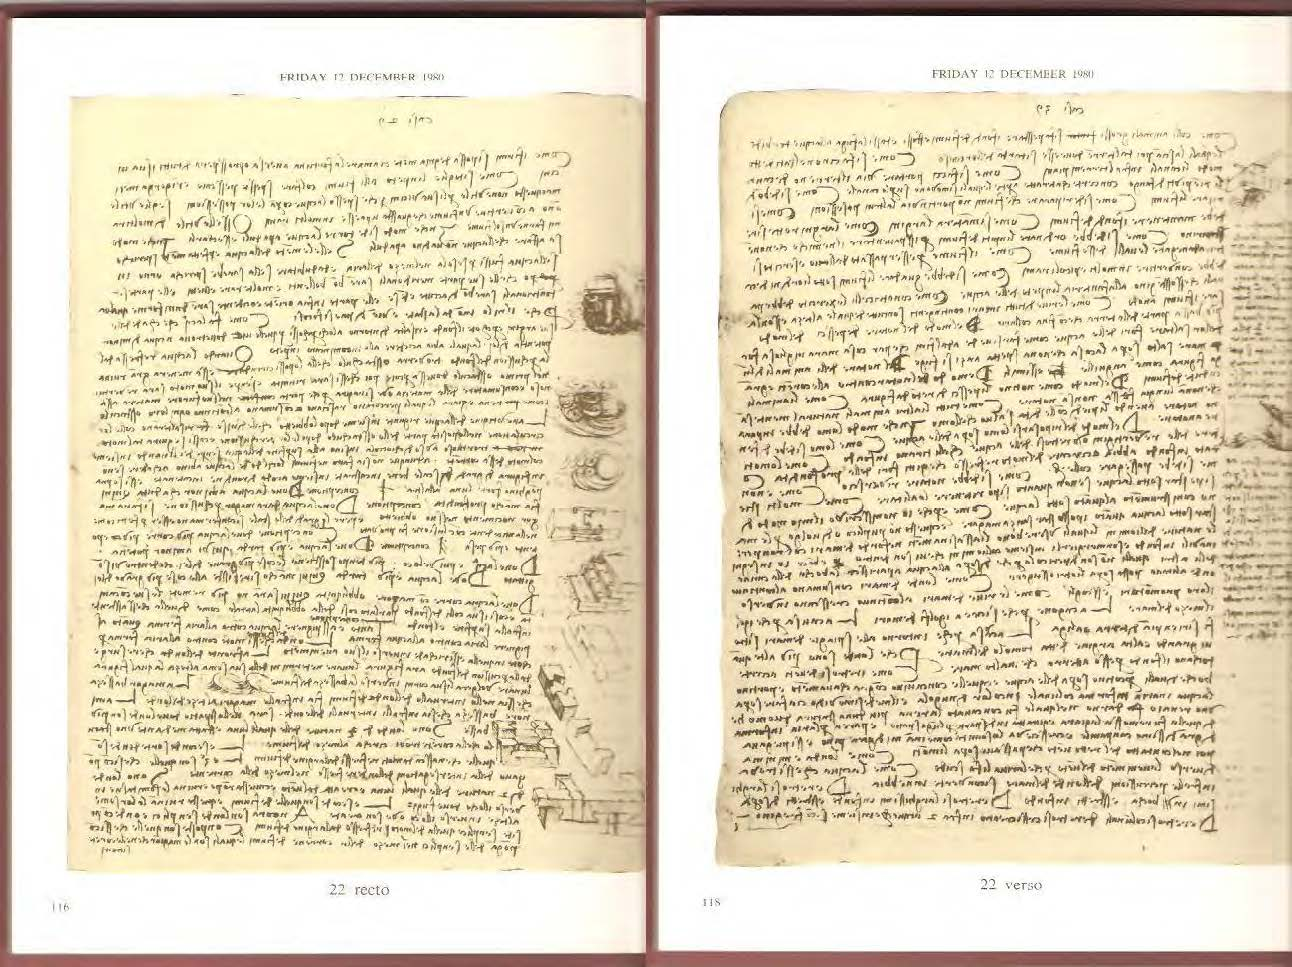 Codex_Leicester_Page_22_Image_0001.jpg